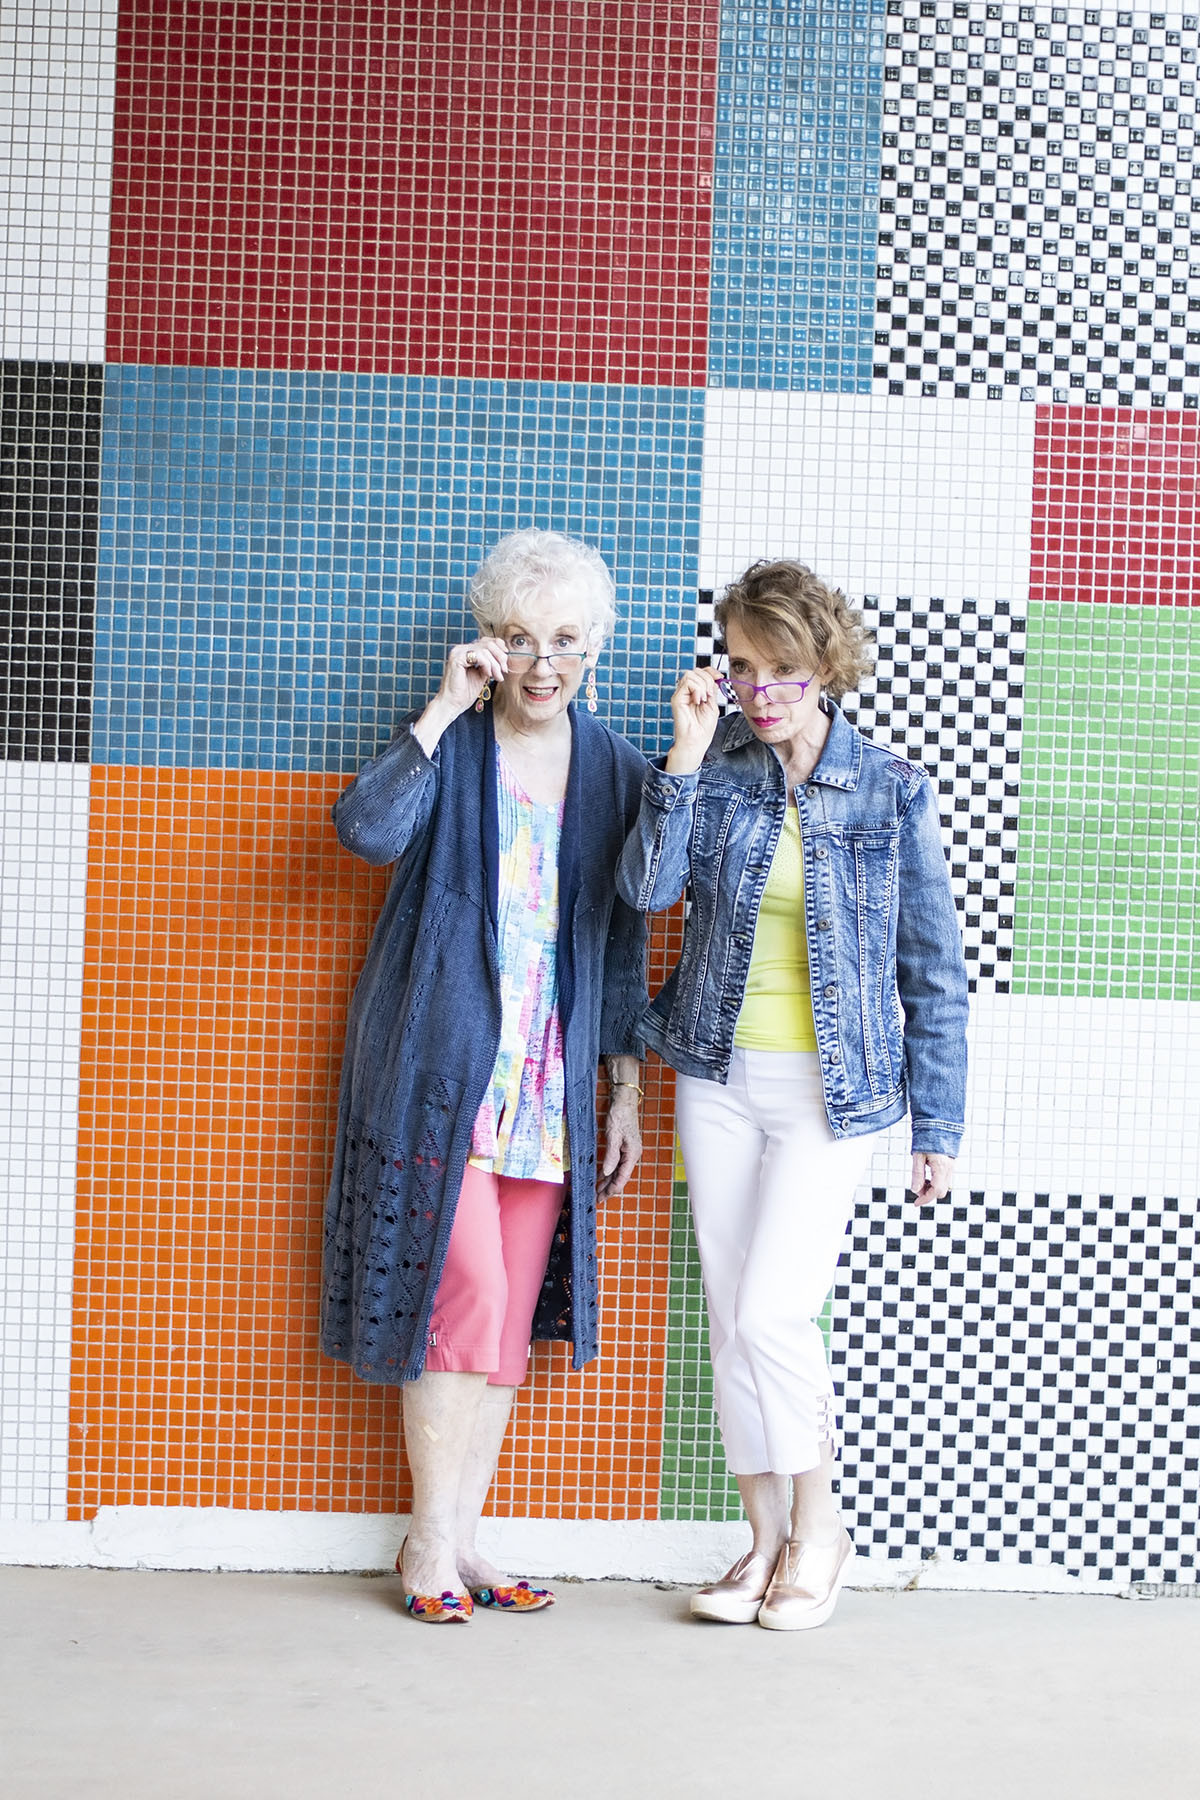 Top 24 Baby Boomer Fashion - Home, Family, Style and Art Ideas